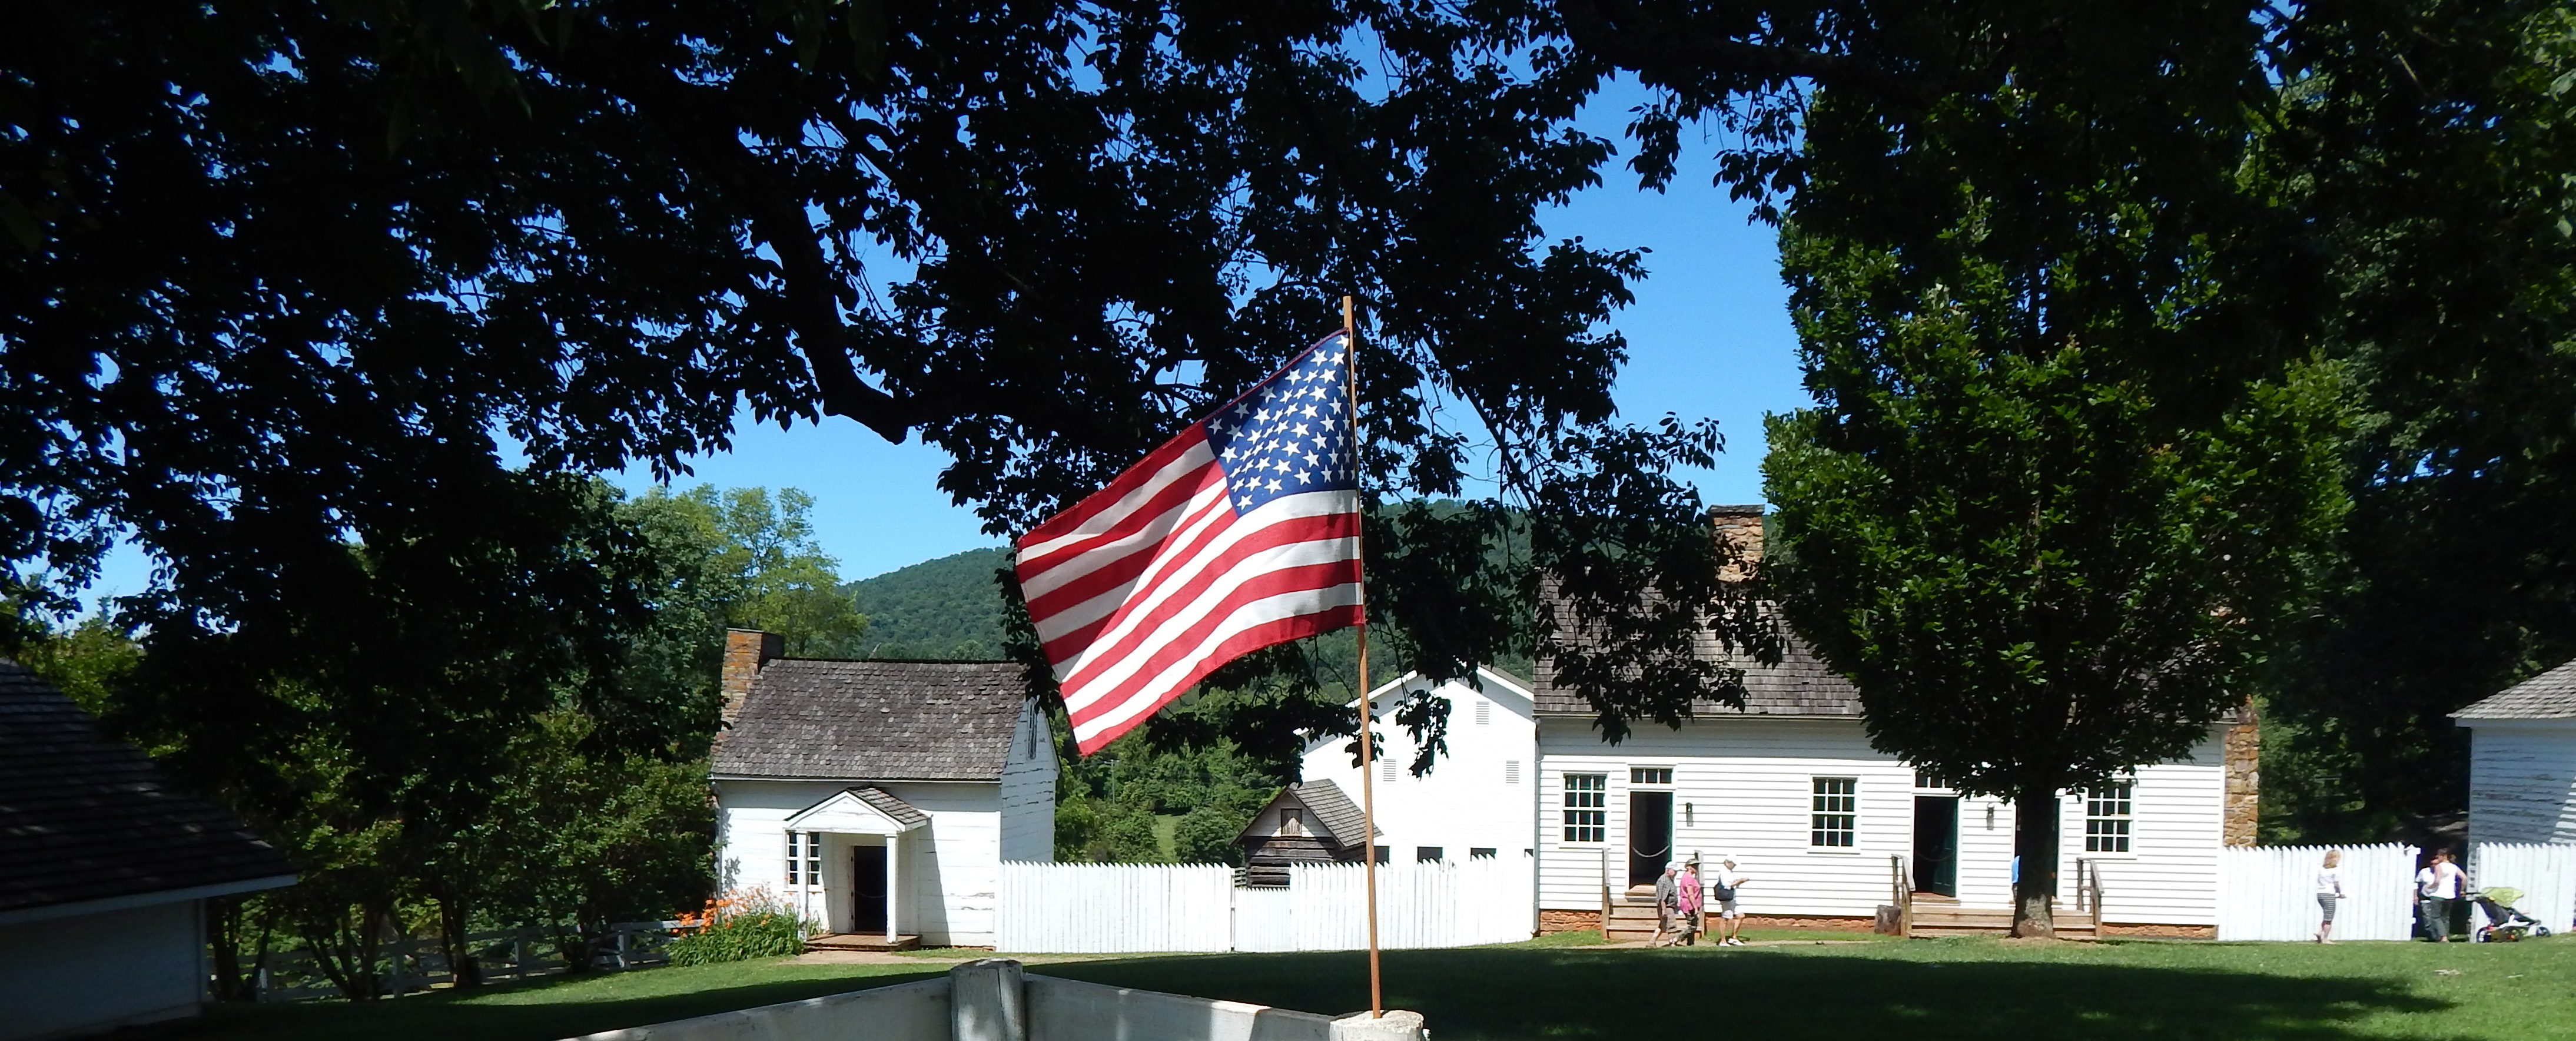 American flag and service outbuildings